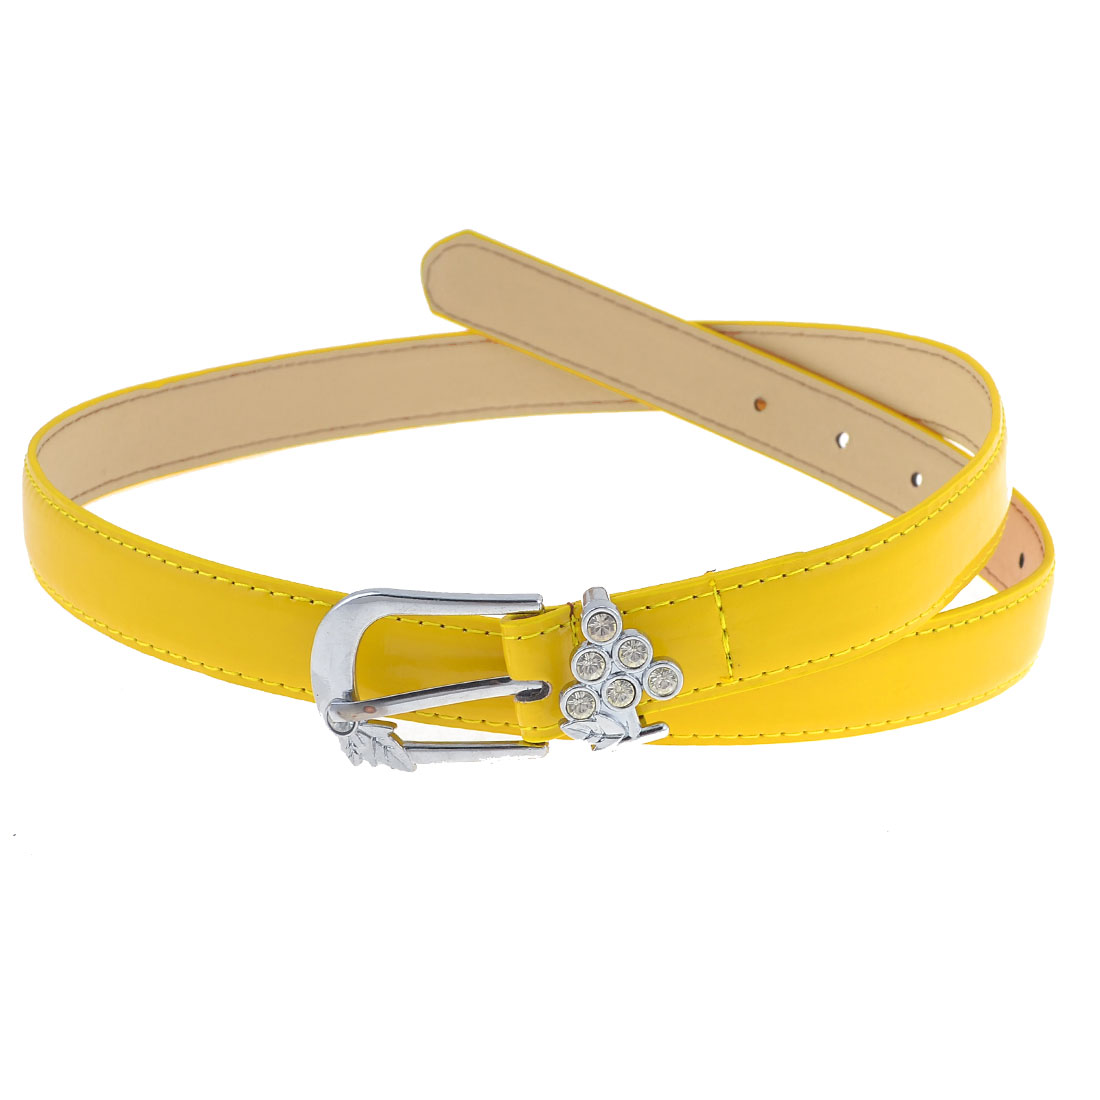 Yellow Leaf Decor Single Pin Buckle Adjustable Waist Belt for Woman